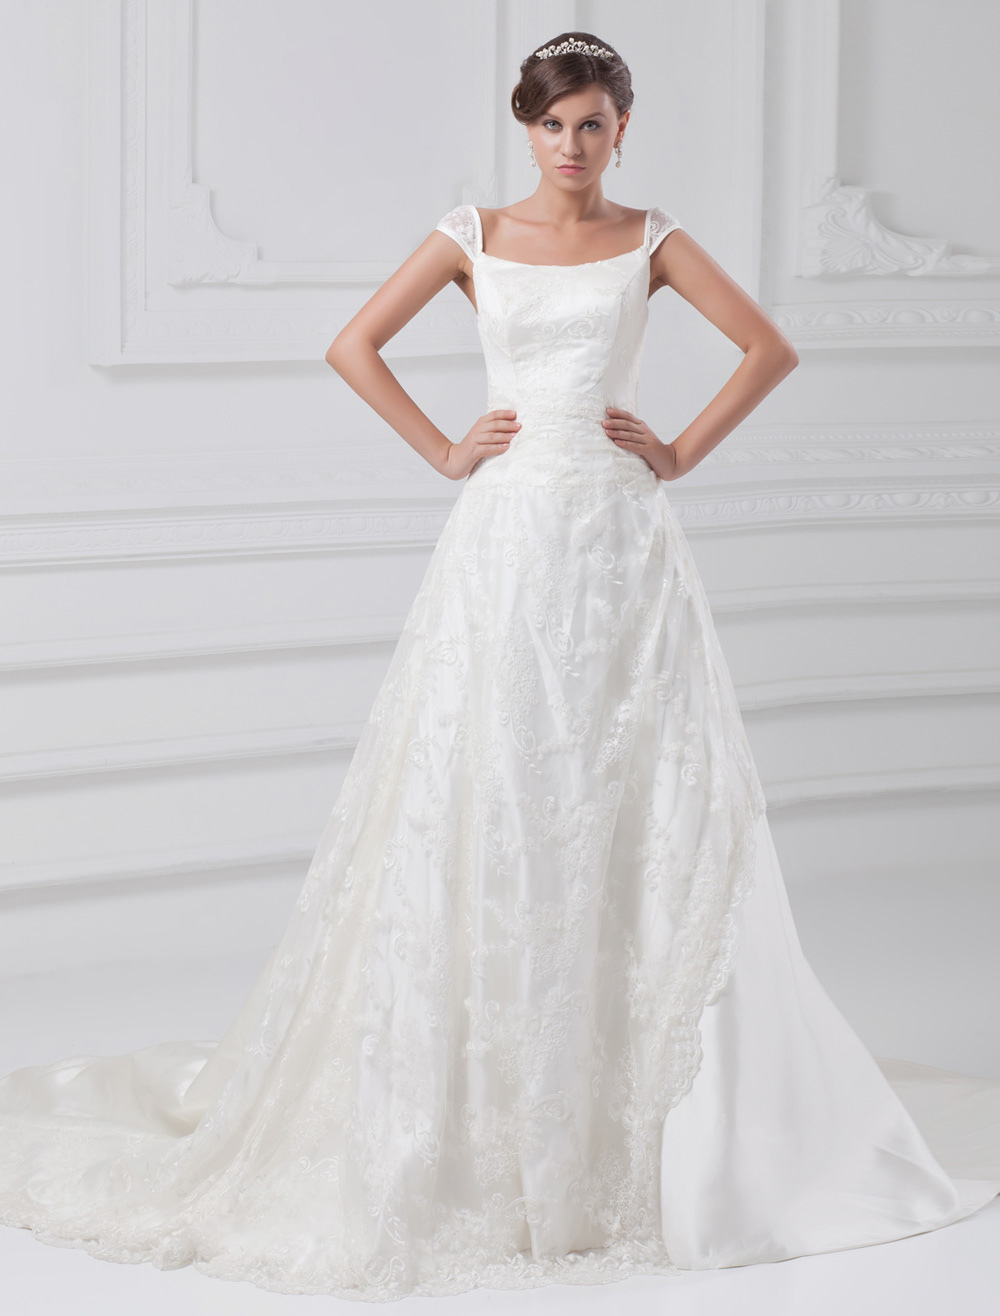 Ivory A-line Off-The-Shoulder Embroidered Taffeta Bridal Wedding Dress